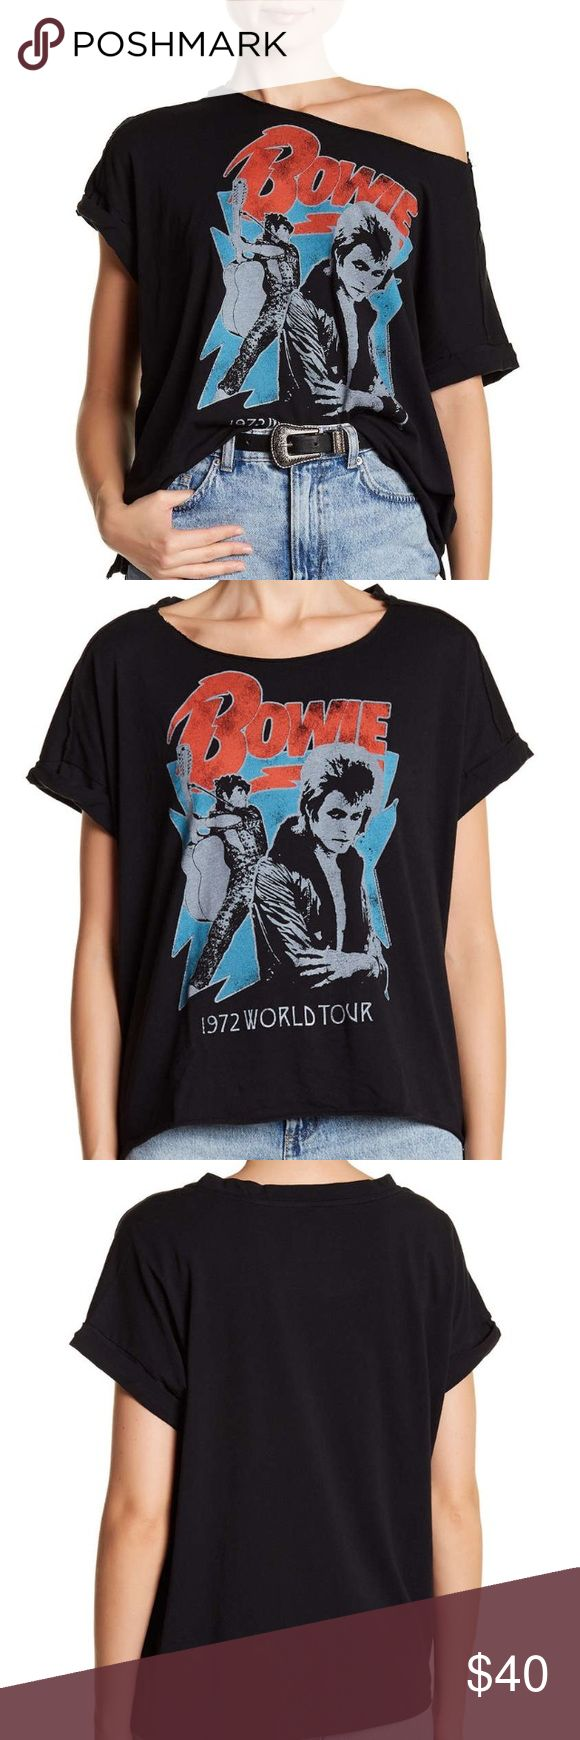 NWT Distressed David Bowie Tshirt New with tags Tshirt, still in plastic from manufacturer. David Bowie tee. Black, thin and soft fabric. The short is intentionally distressed and made to look vintage. Size small. In fished crew neck. Slouchy on shoulder. By Bravado. Retail is over $60. Bravado Tops Tees - Short Sleeve